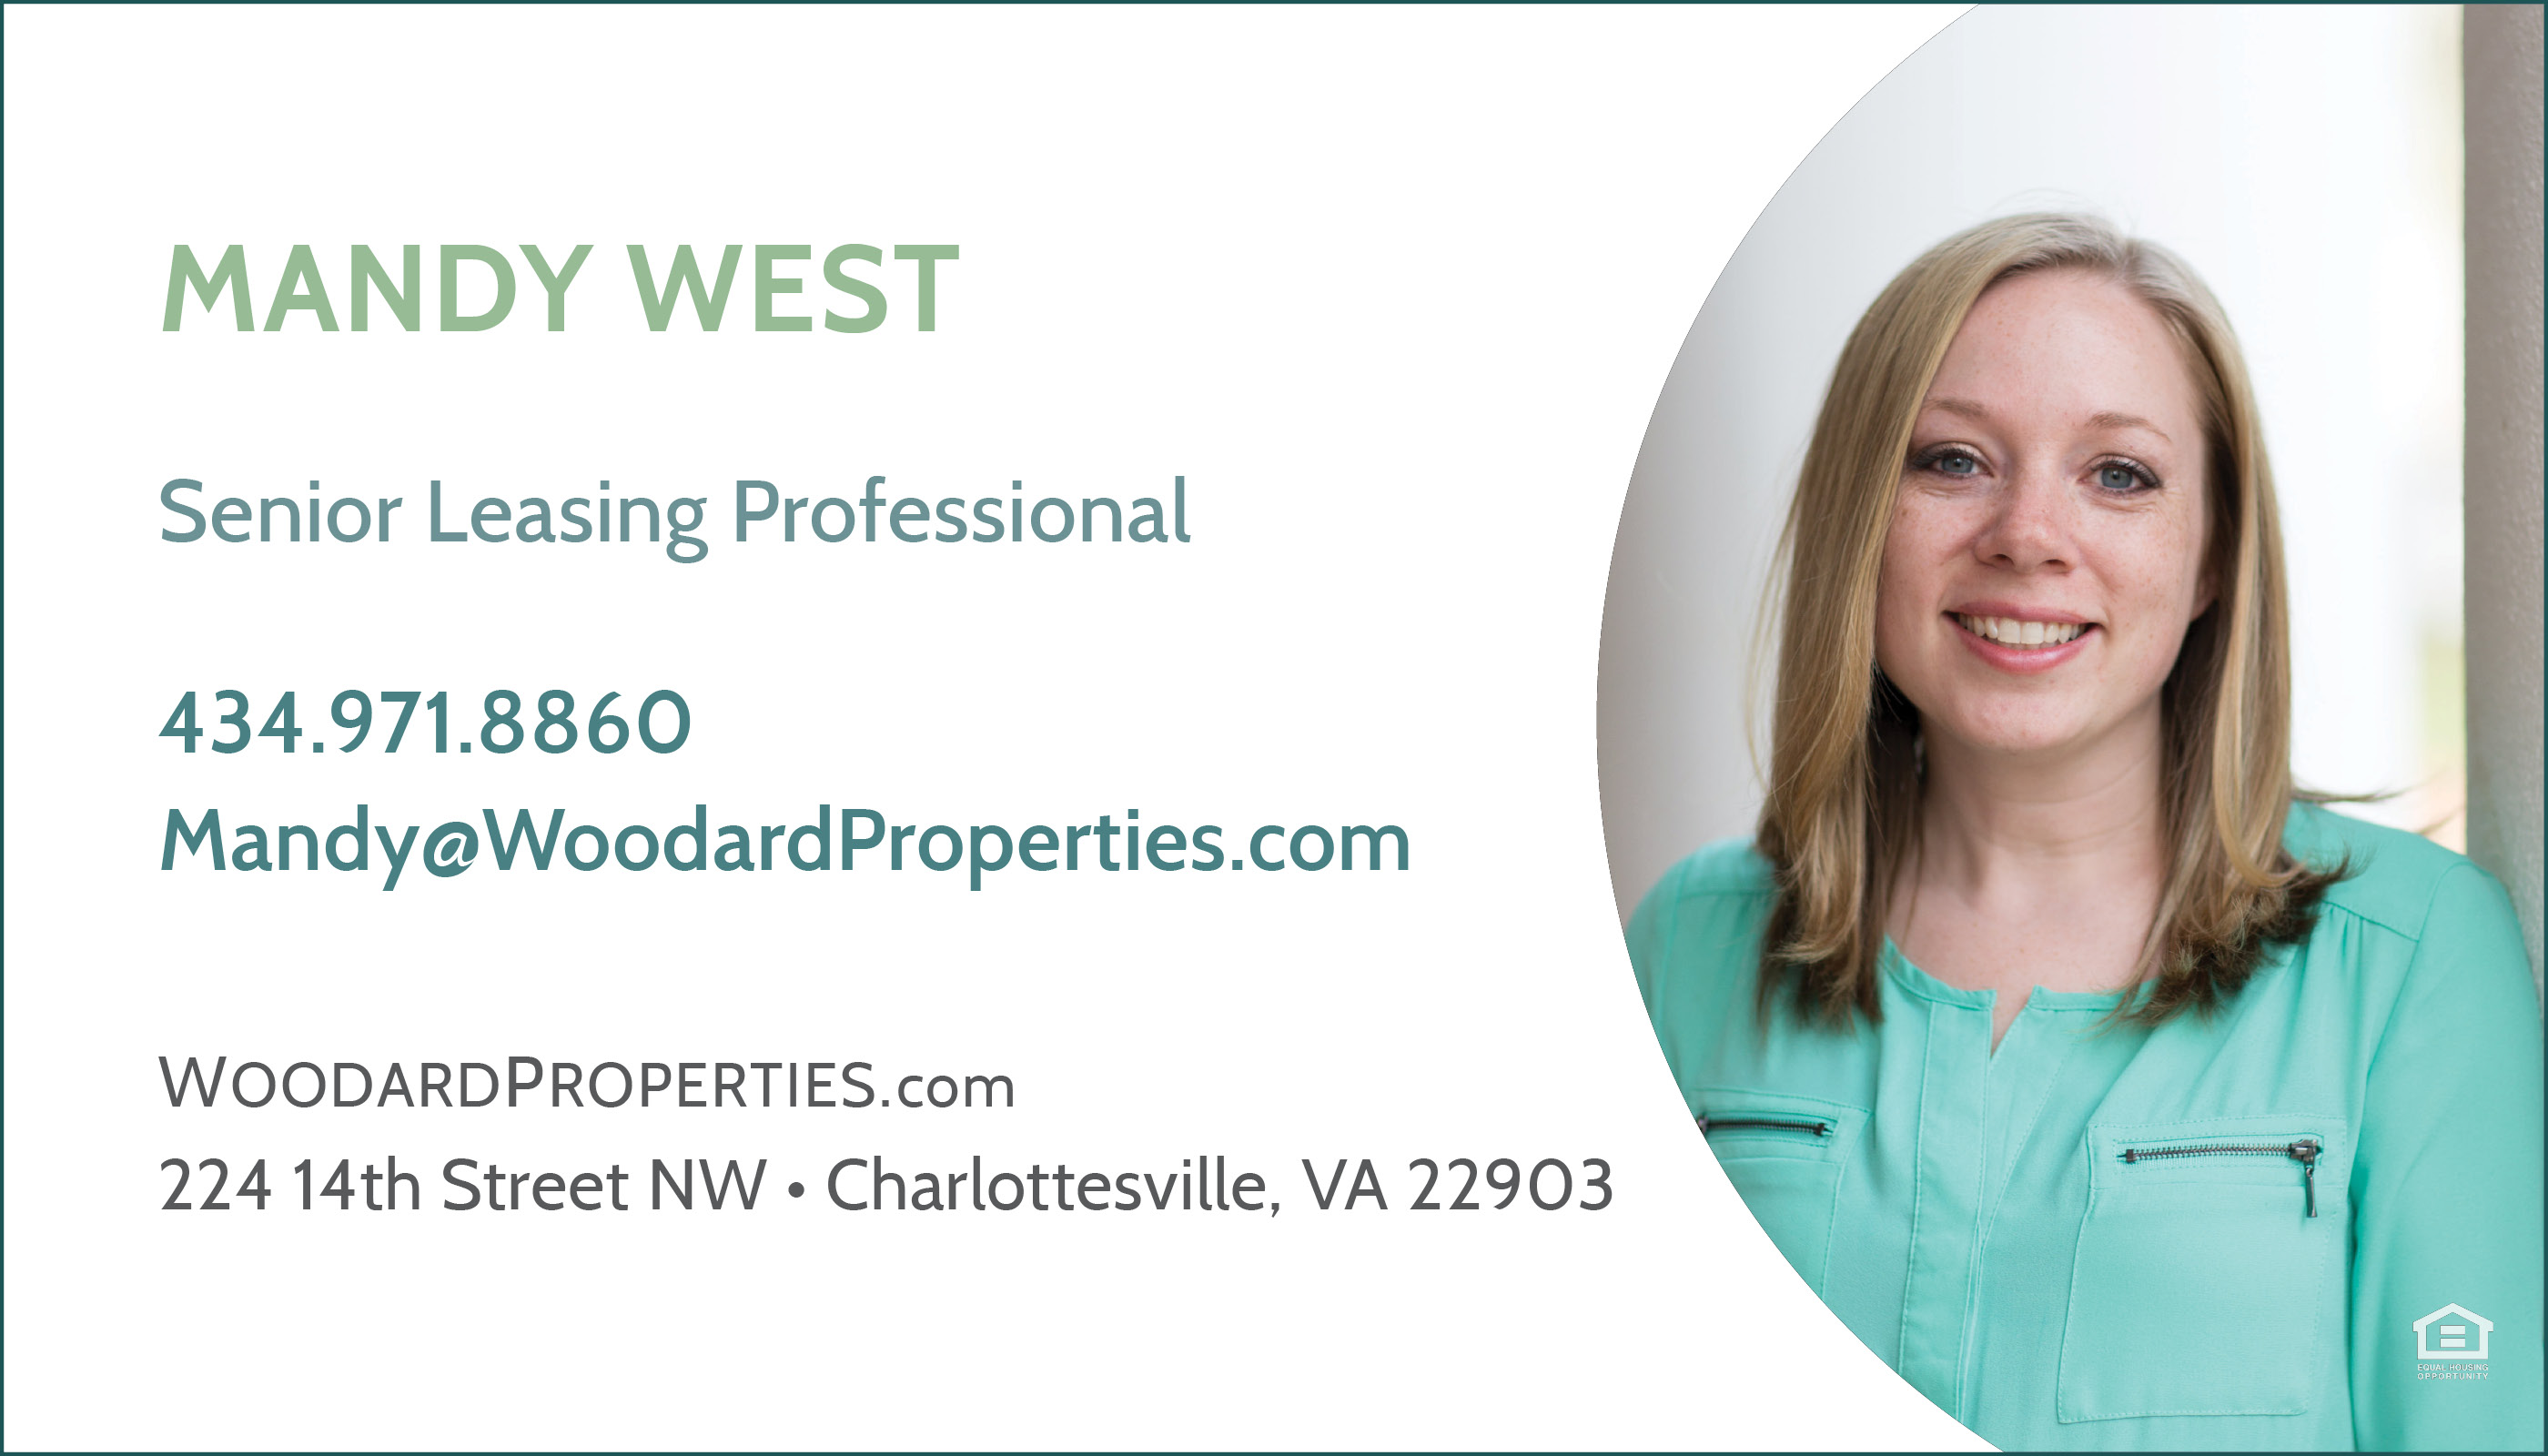 Z Mandy W Email Signature Woodard Properties